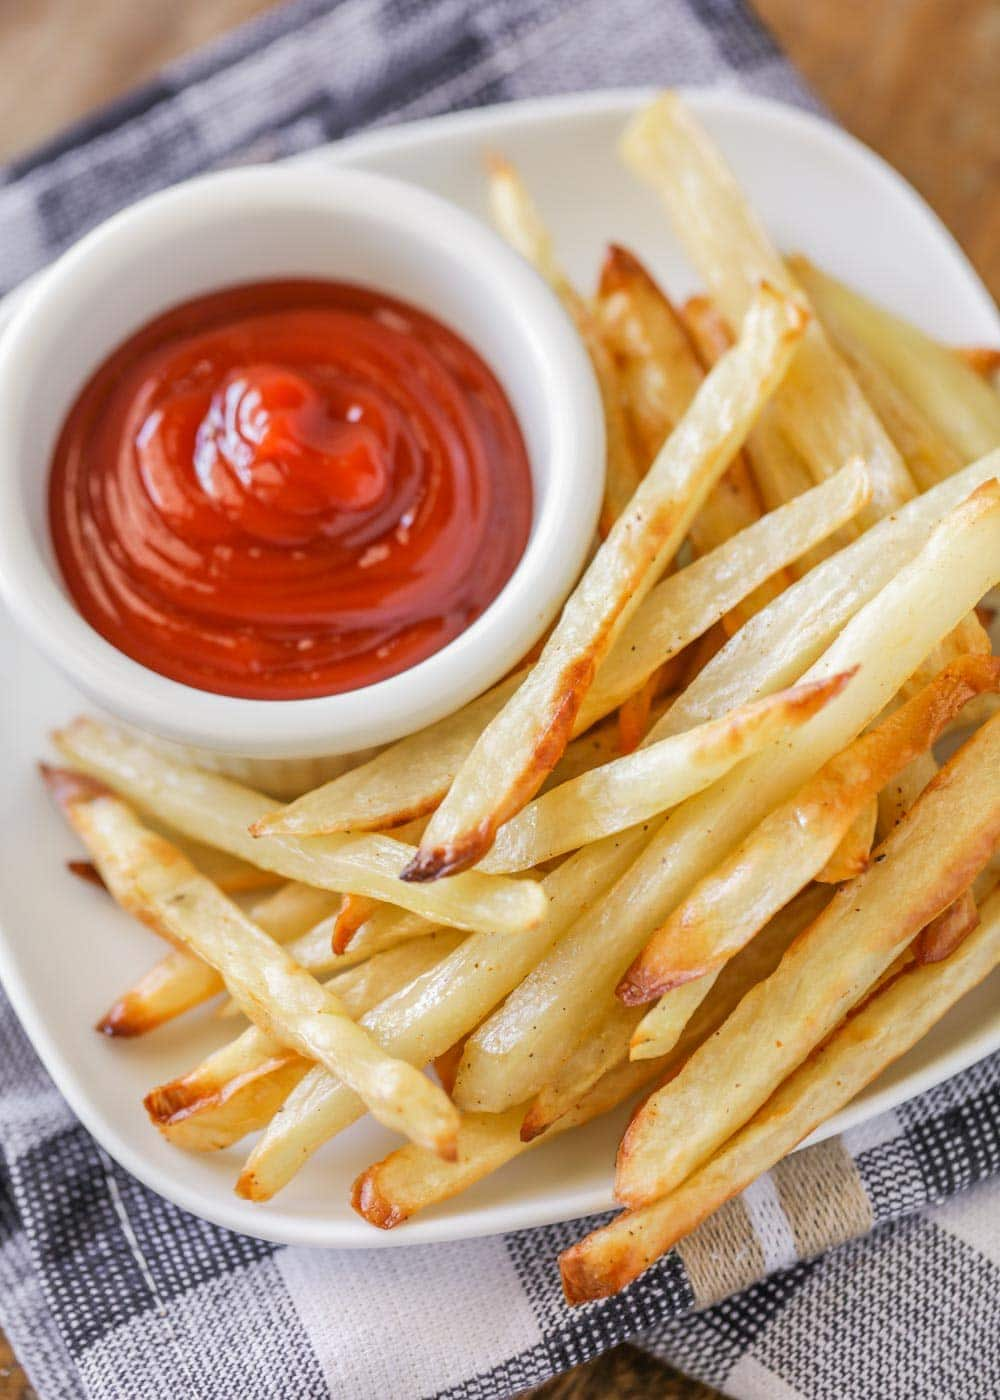 Homemade baked french fries with ketchup on the side